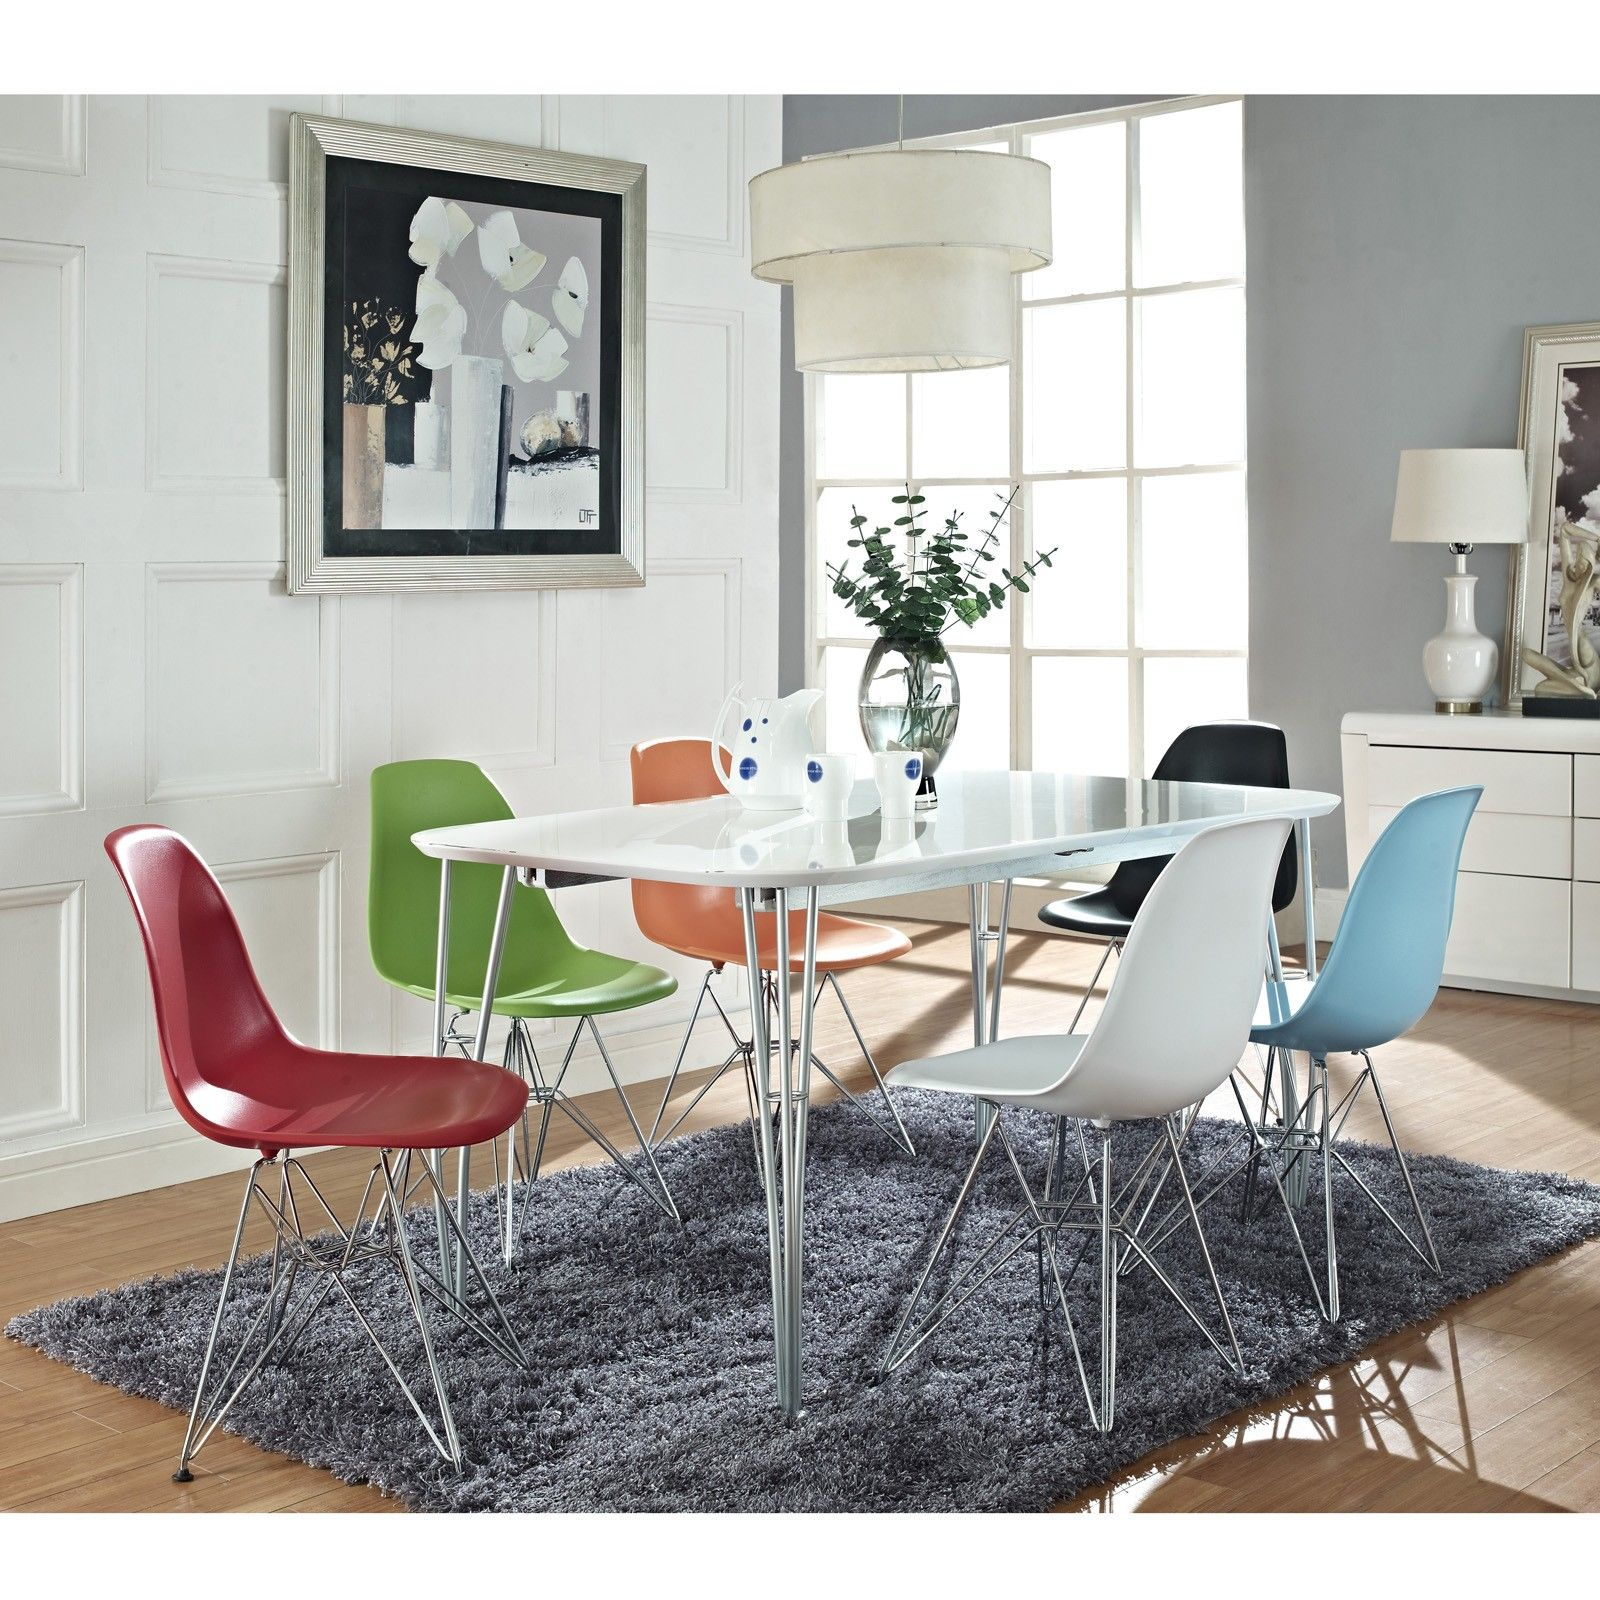 Eames molded plastic chair dining room - Eames Inspired Eiffel Dining Chairs All White Or Orange